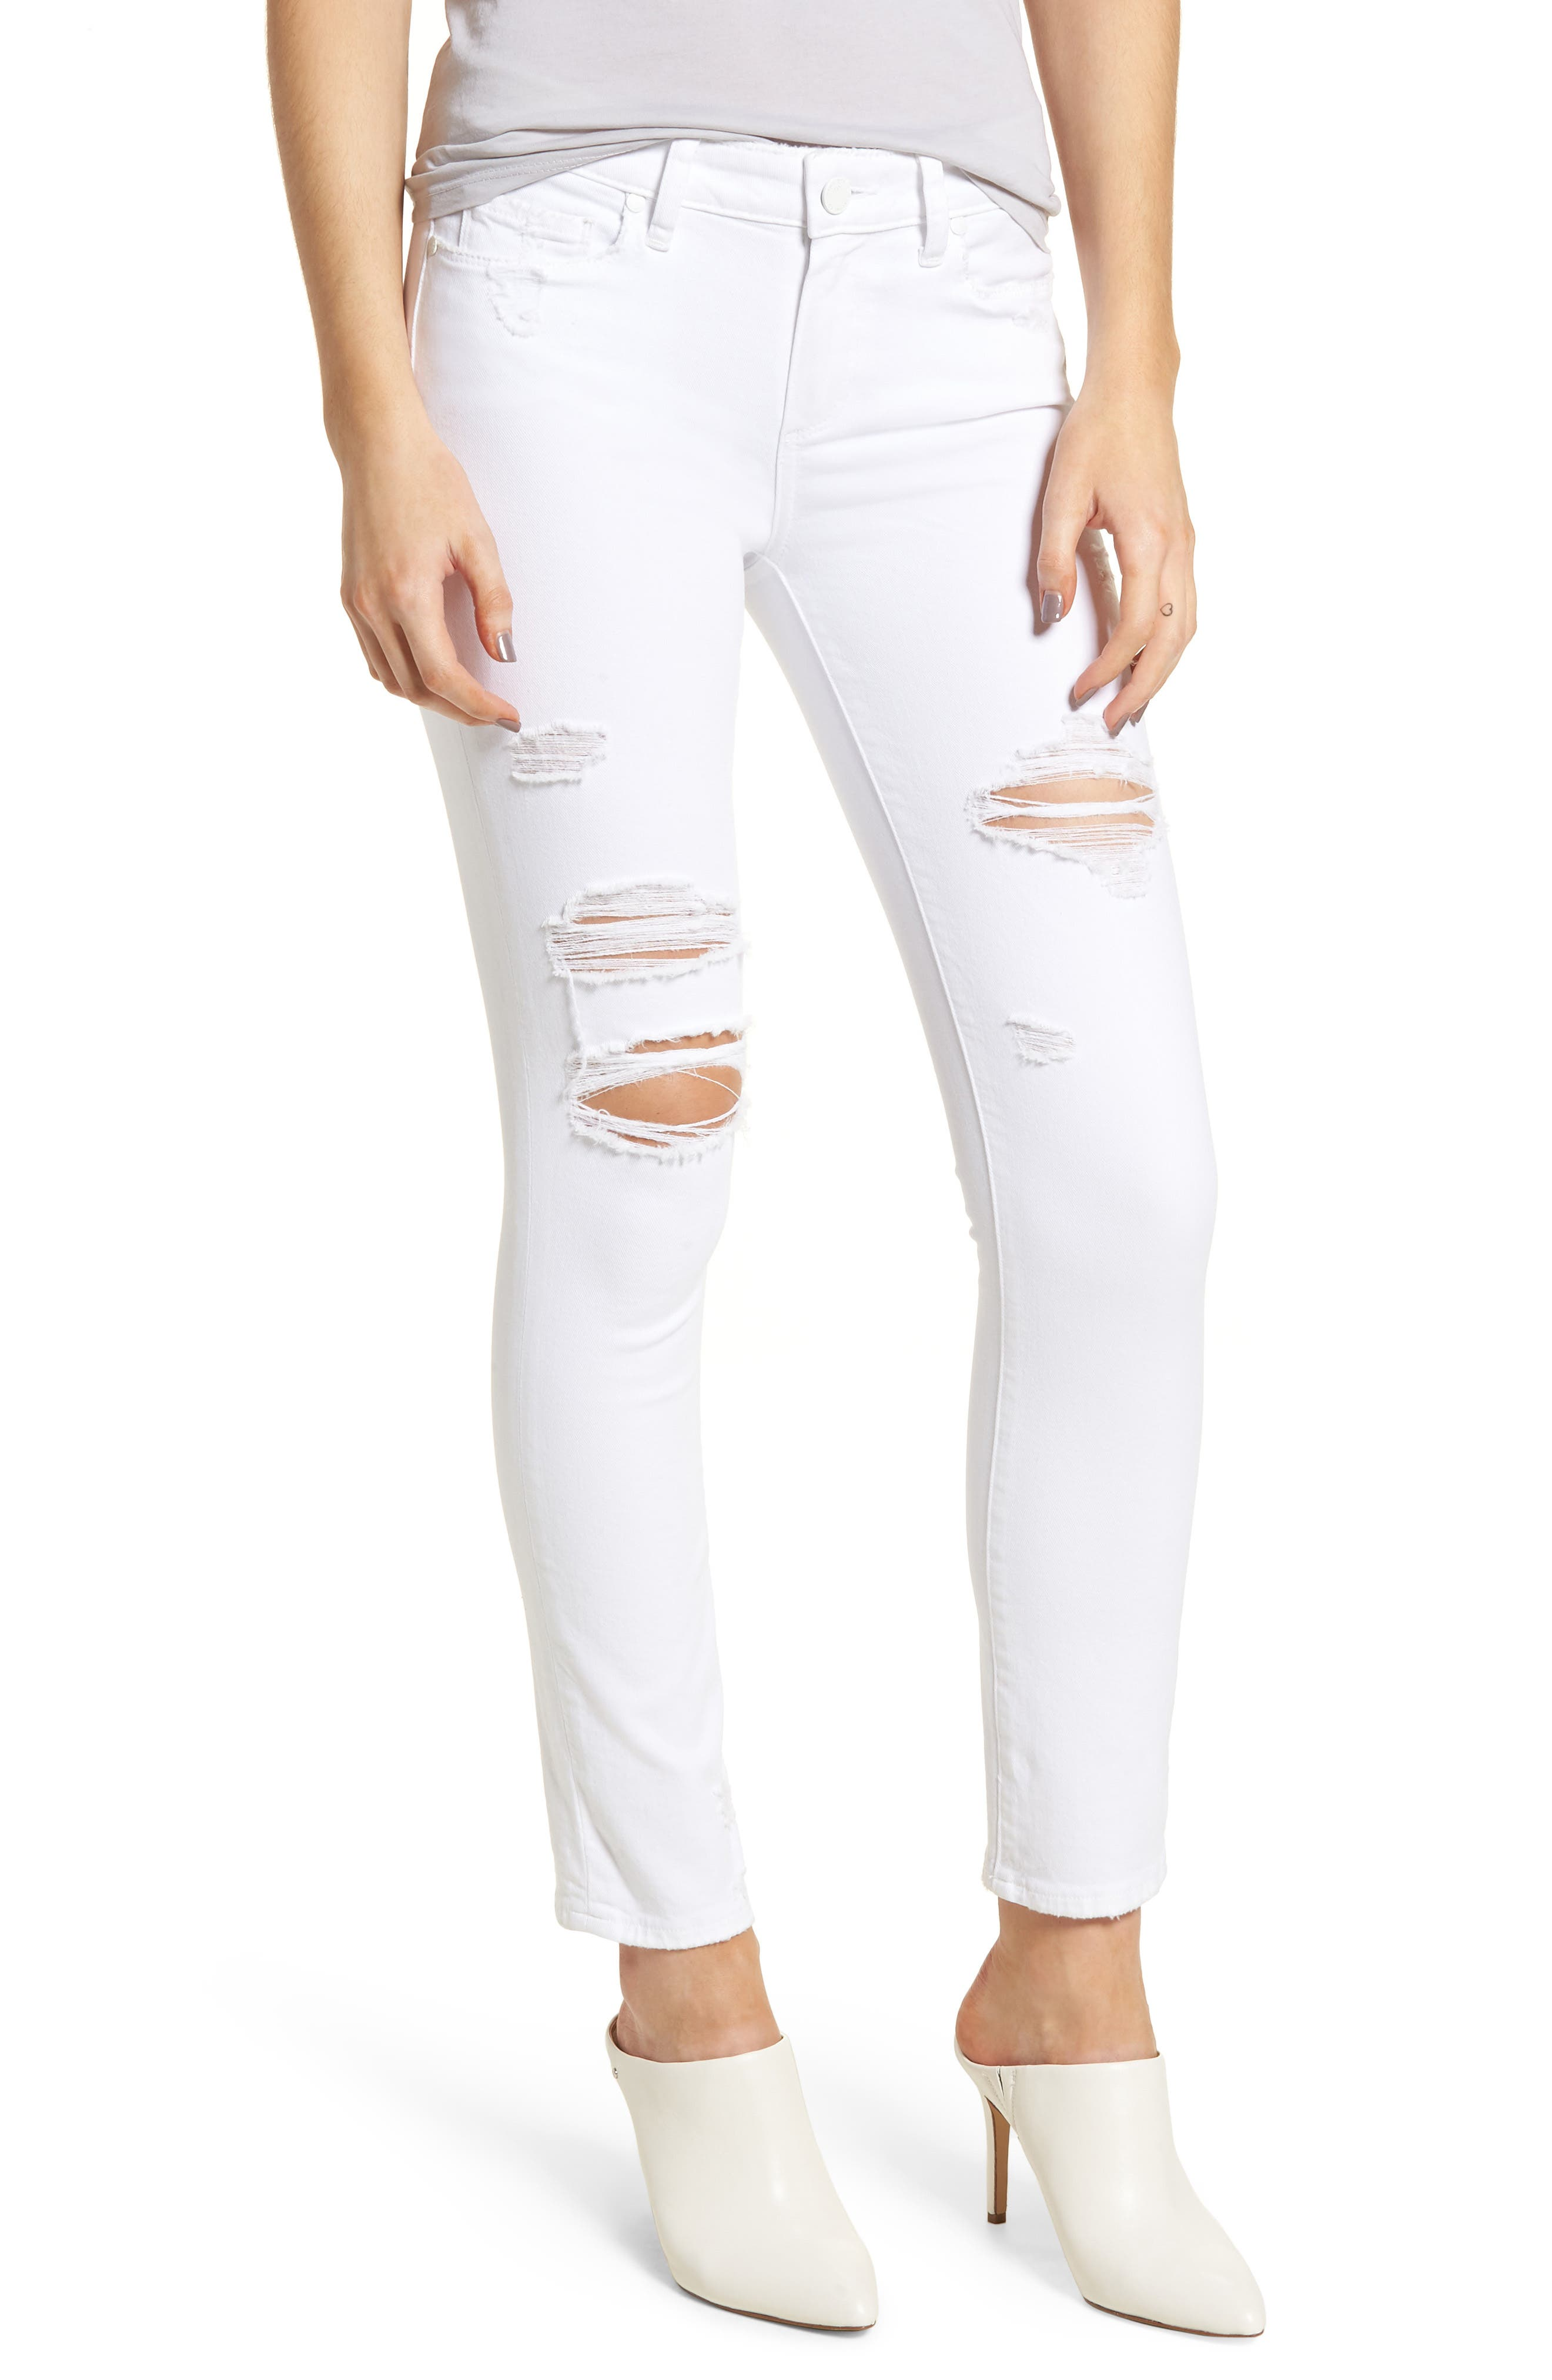 Skyline Ripped Ankle Skinny Jeans,                             Main thumbnail 1, color,                             100